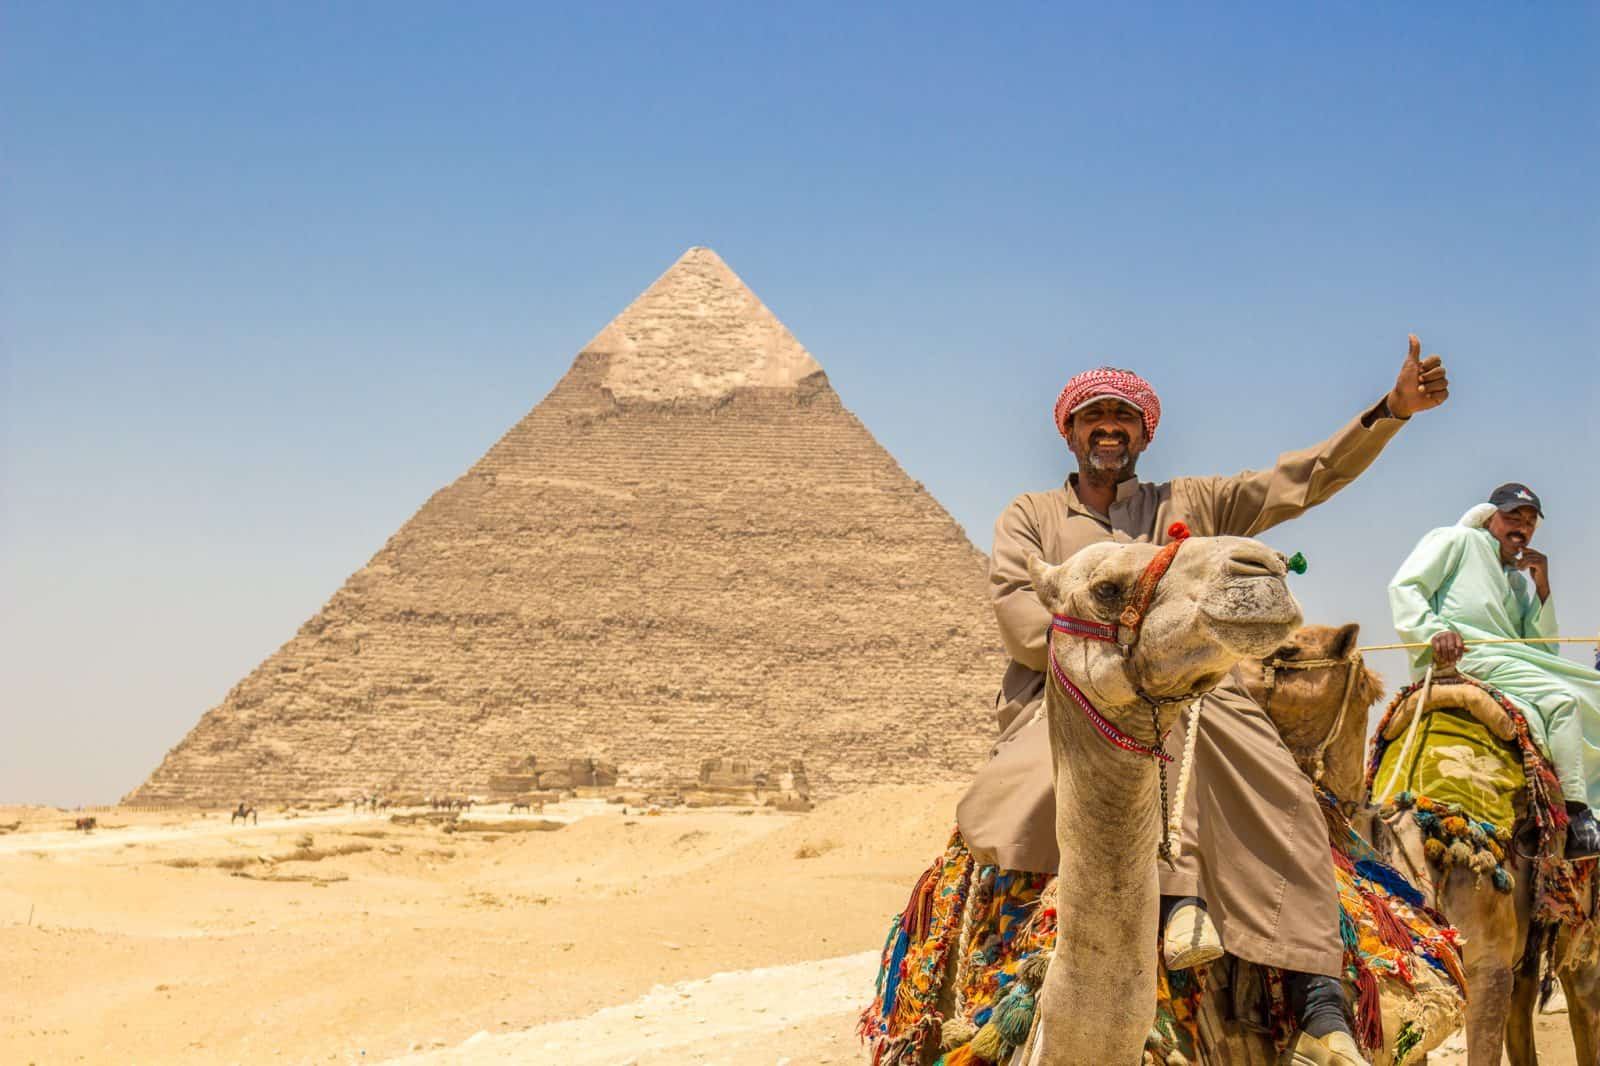 Thumbs up at the Great Pyramids of Giza!